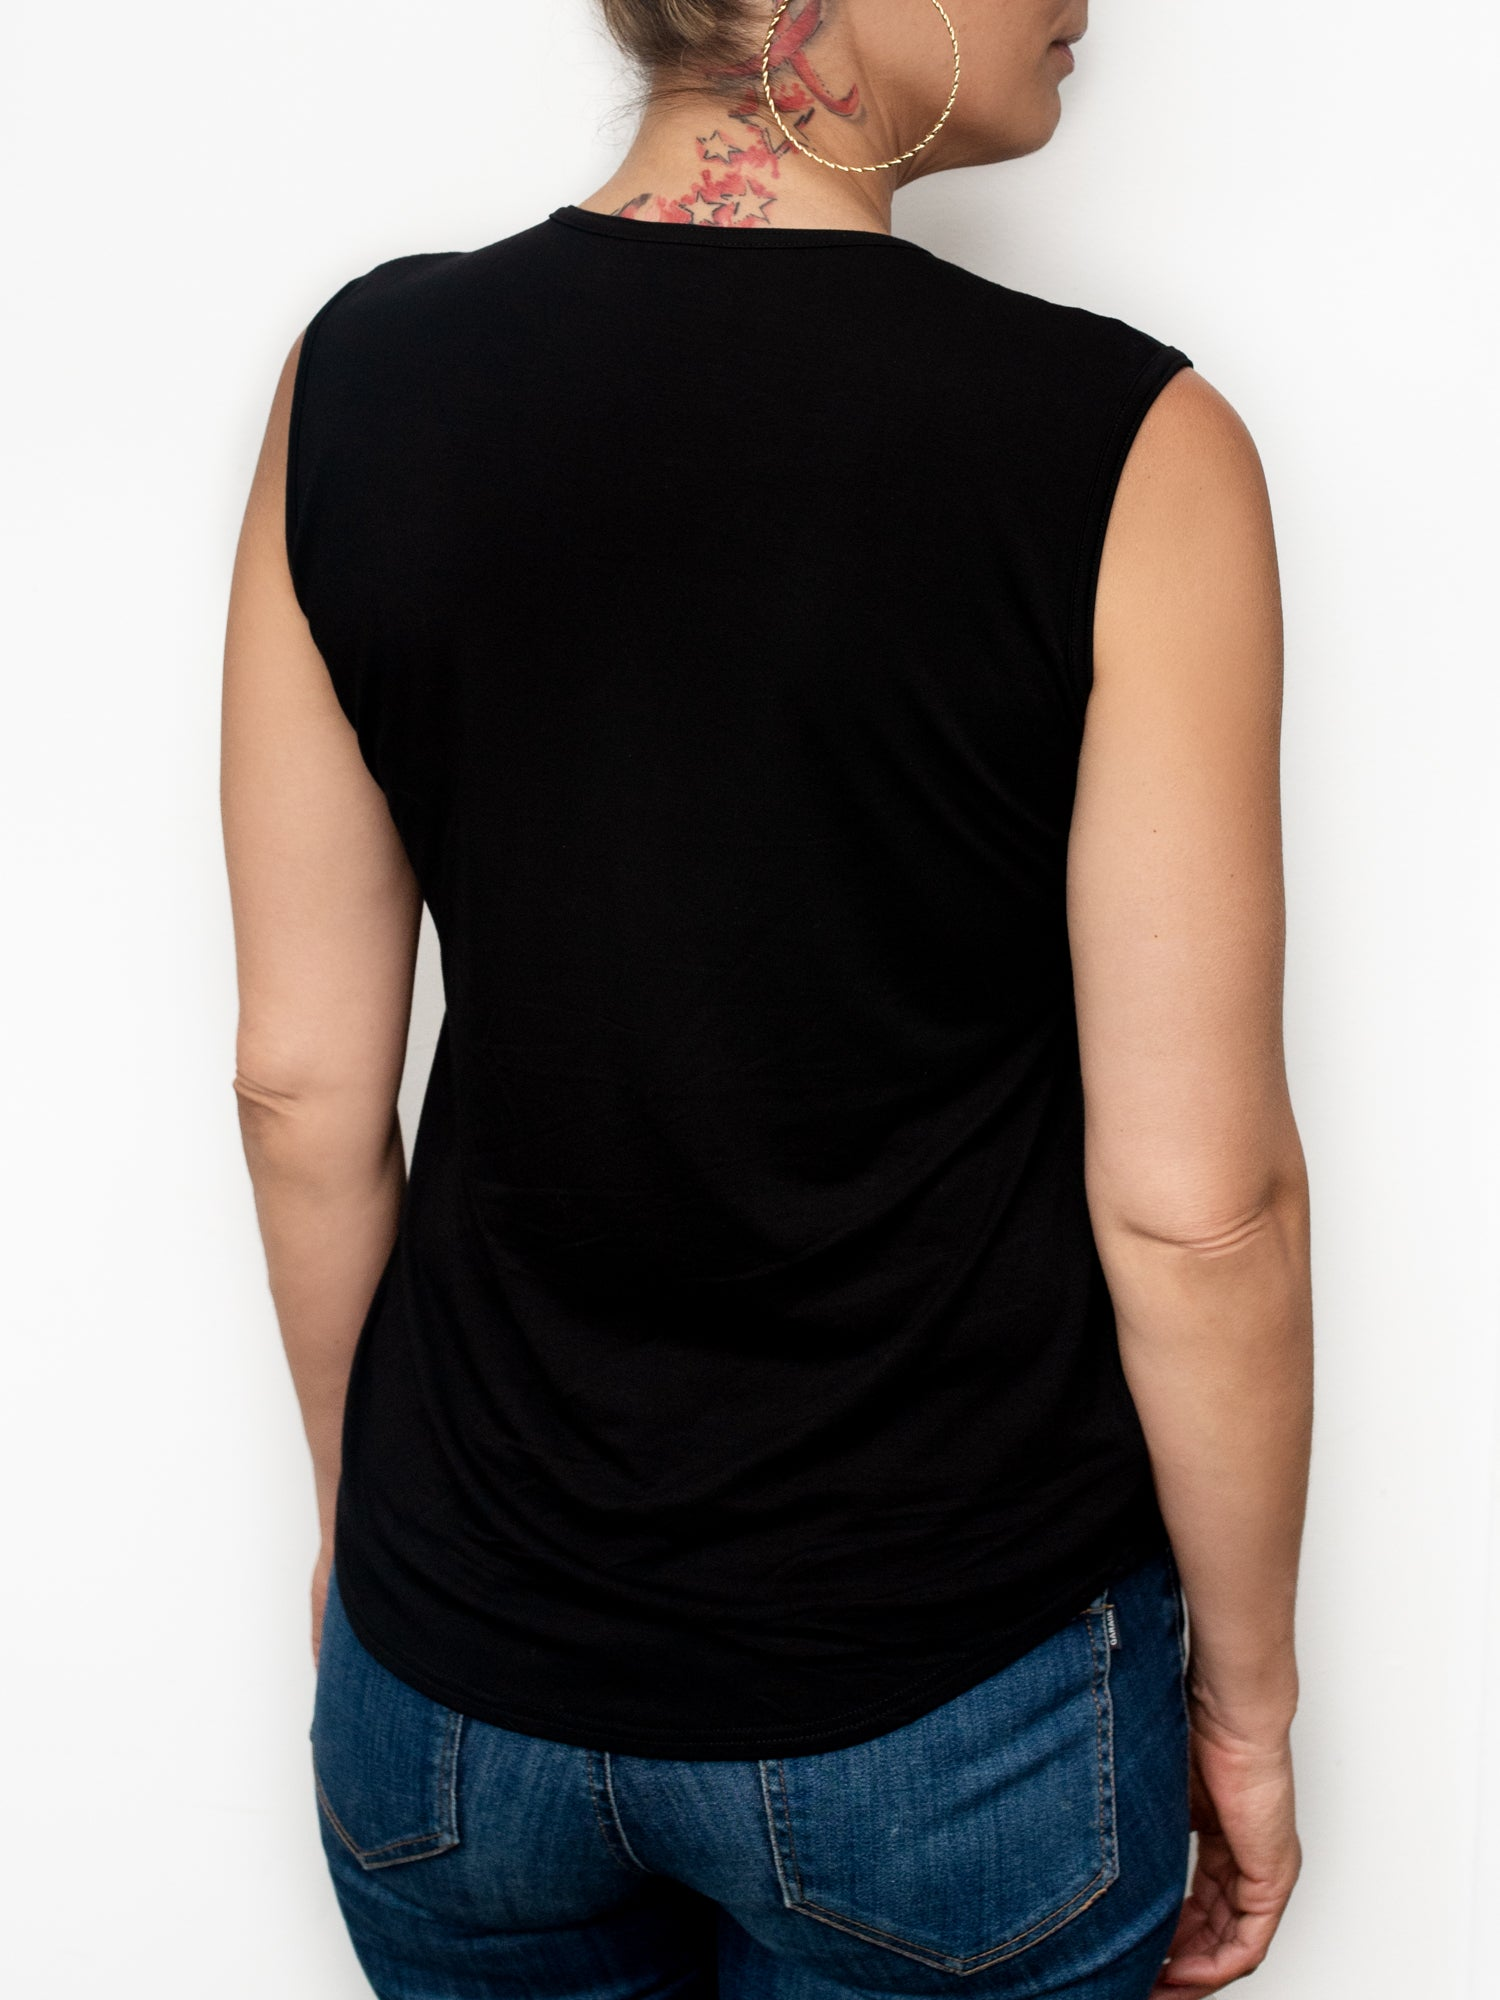 Camisole Stand Tall - Tiens-toi droite